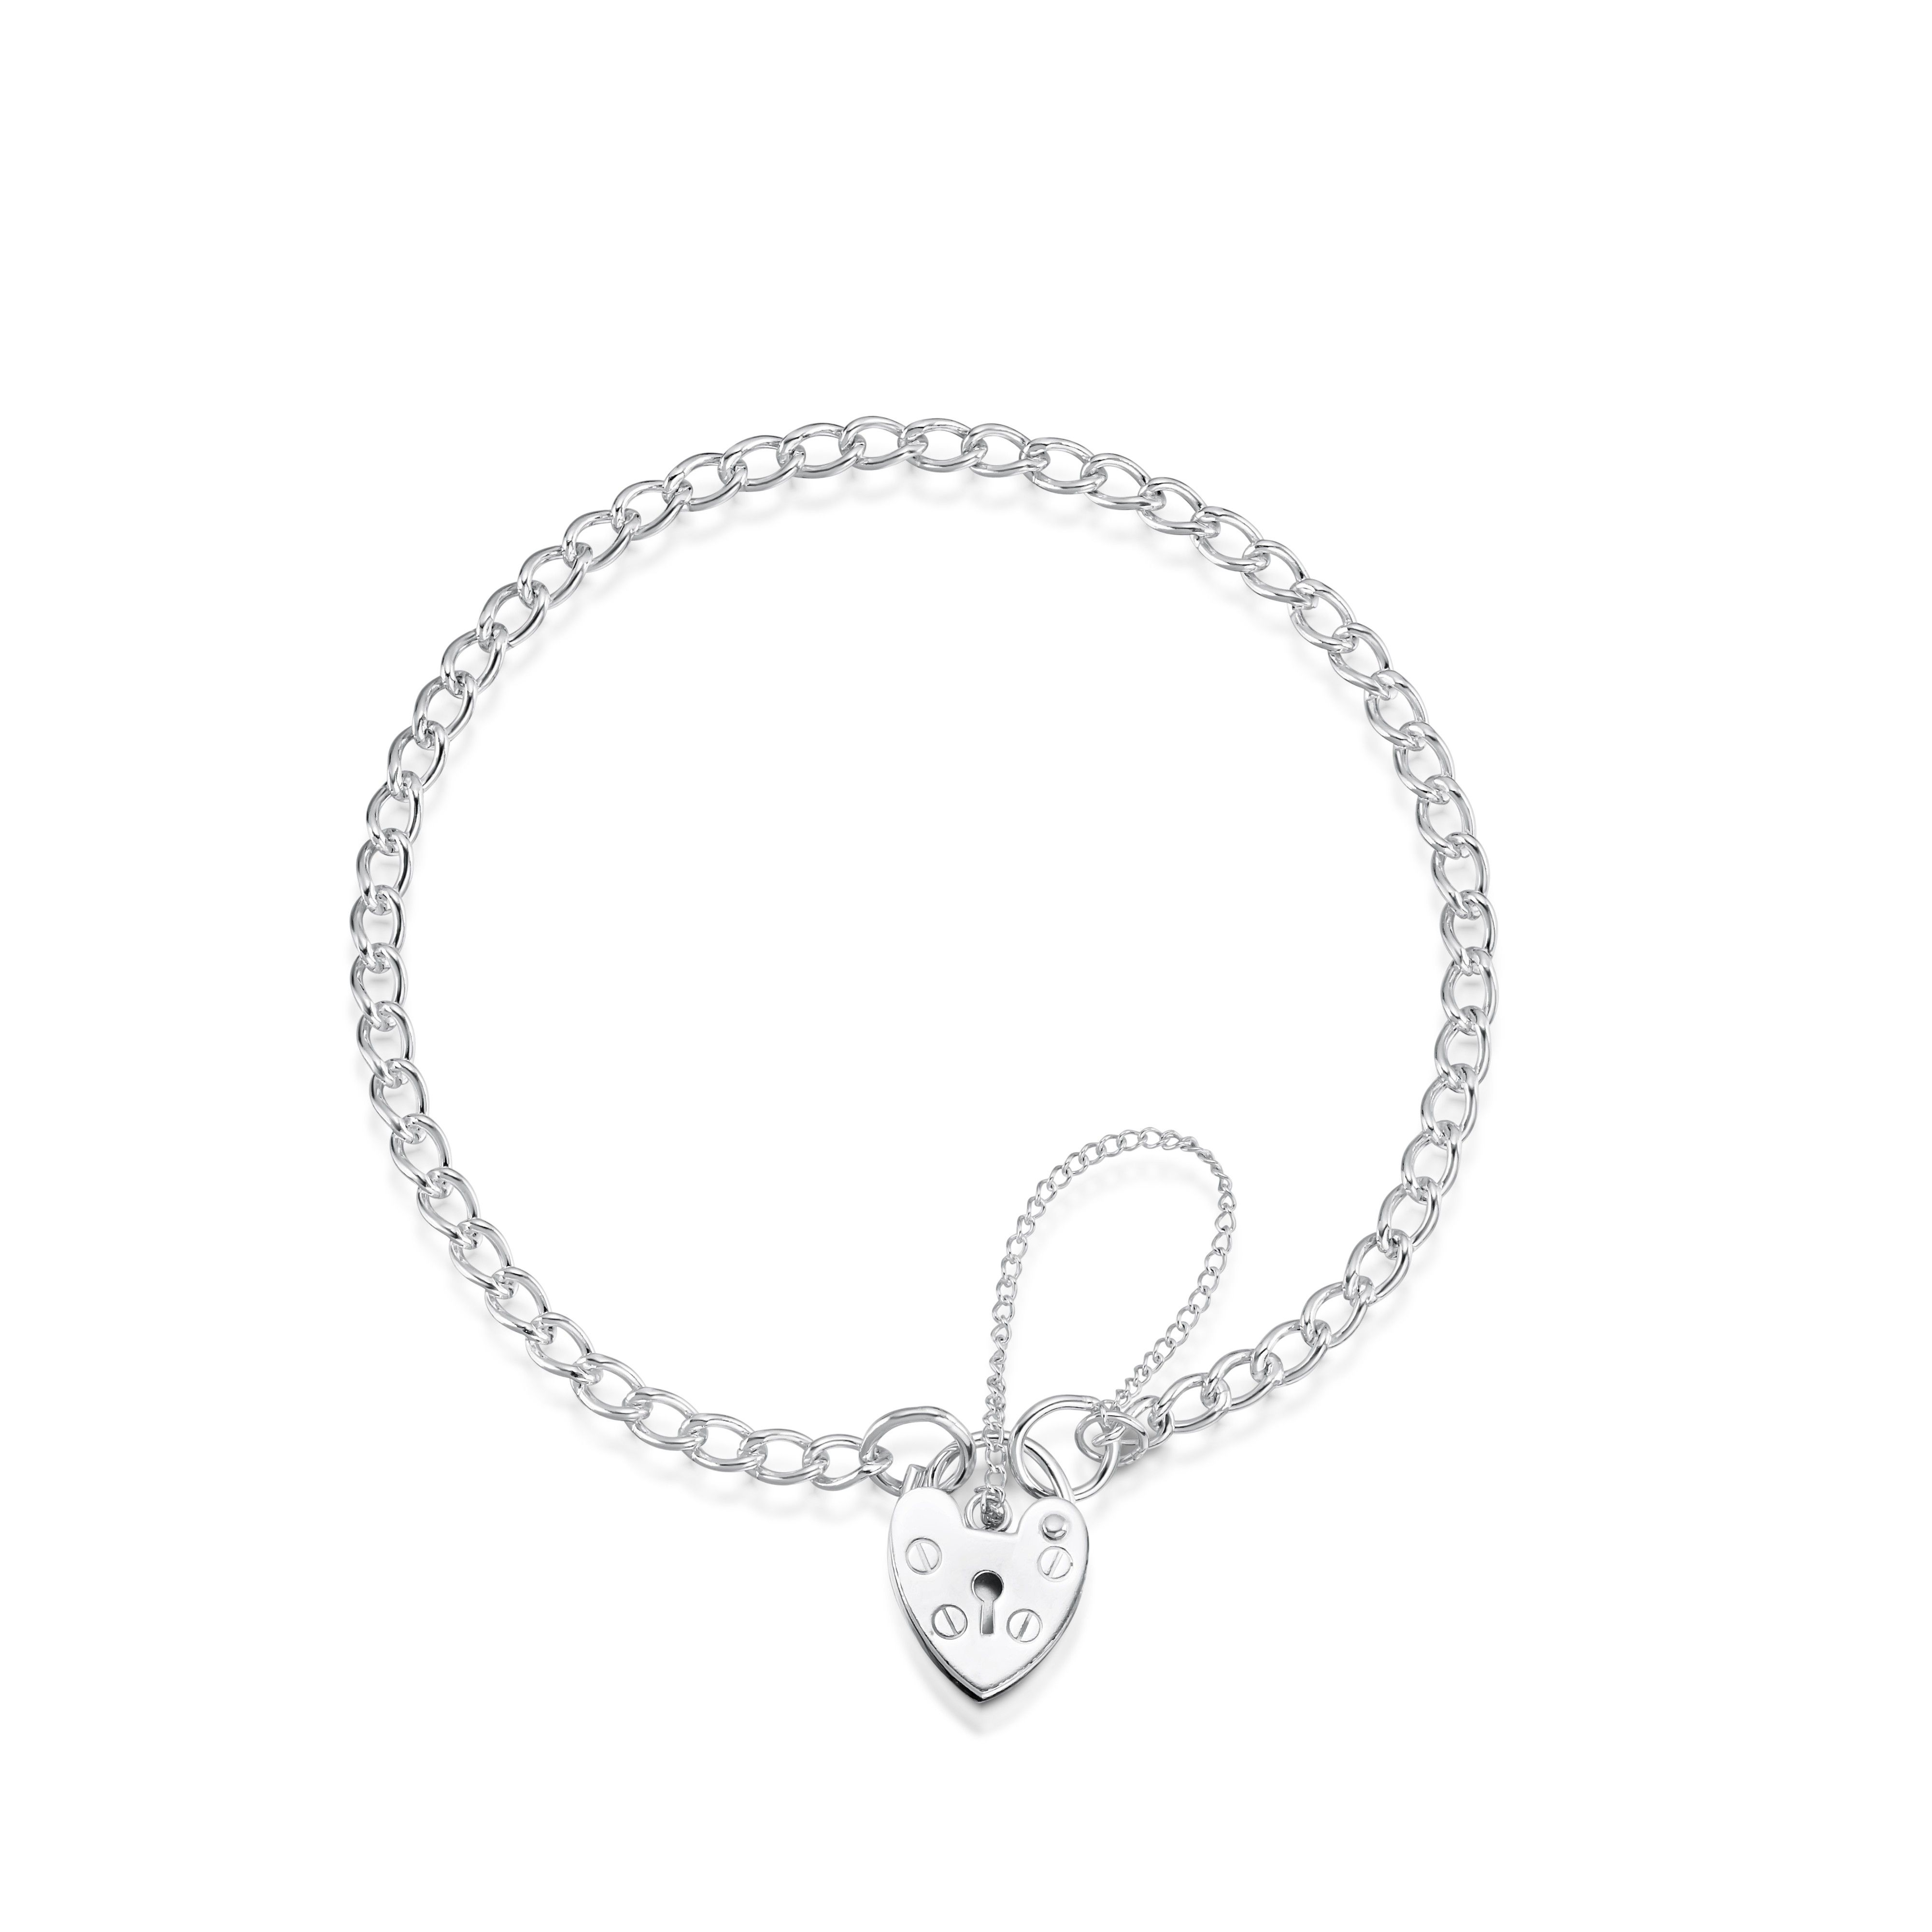 Sterling Silver Curb Charm Bracelet With Heart Shape Padlock Throughout Best And Newest Heart Shaped Padlock Necklaces (Gallery 4 of 25)